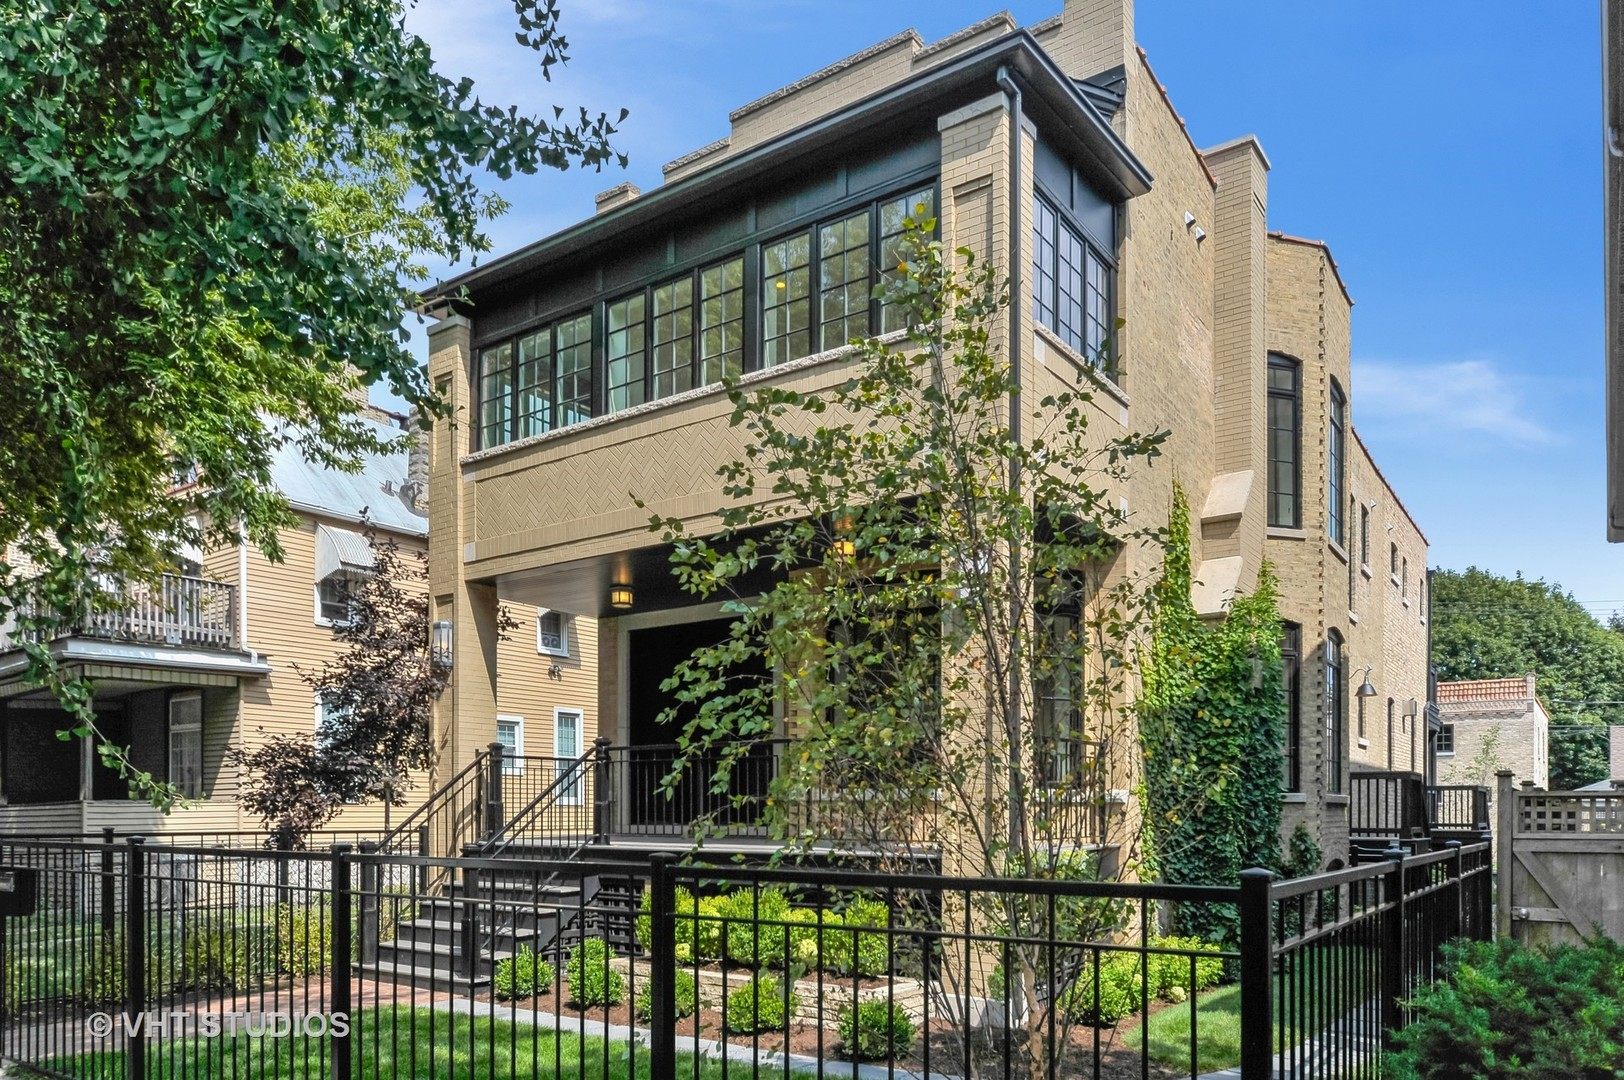 4419 NORTH SEELEY AVENUE, CHICAGO, IL 60625